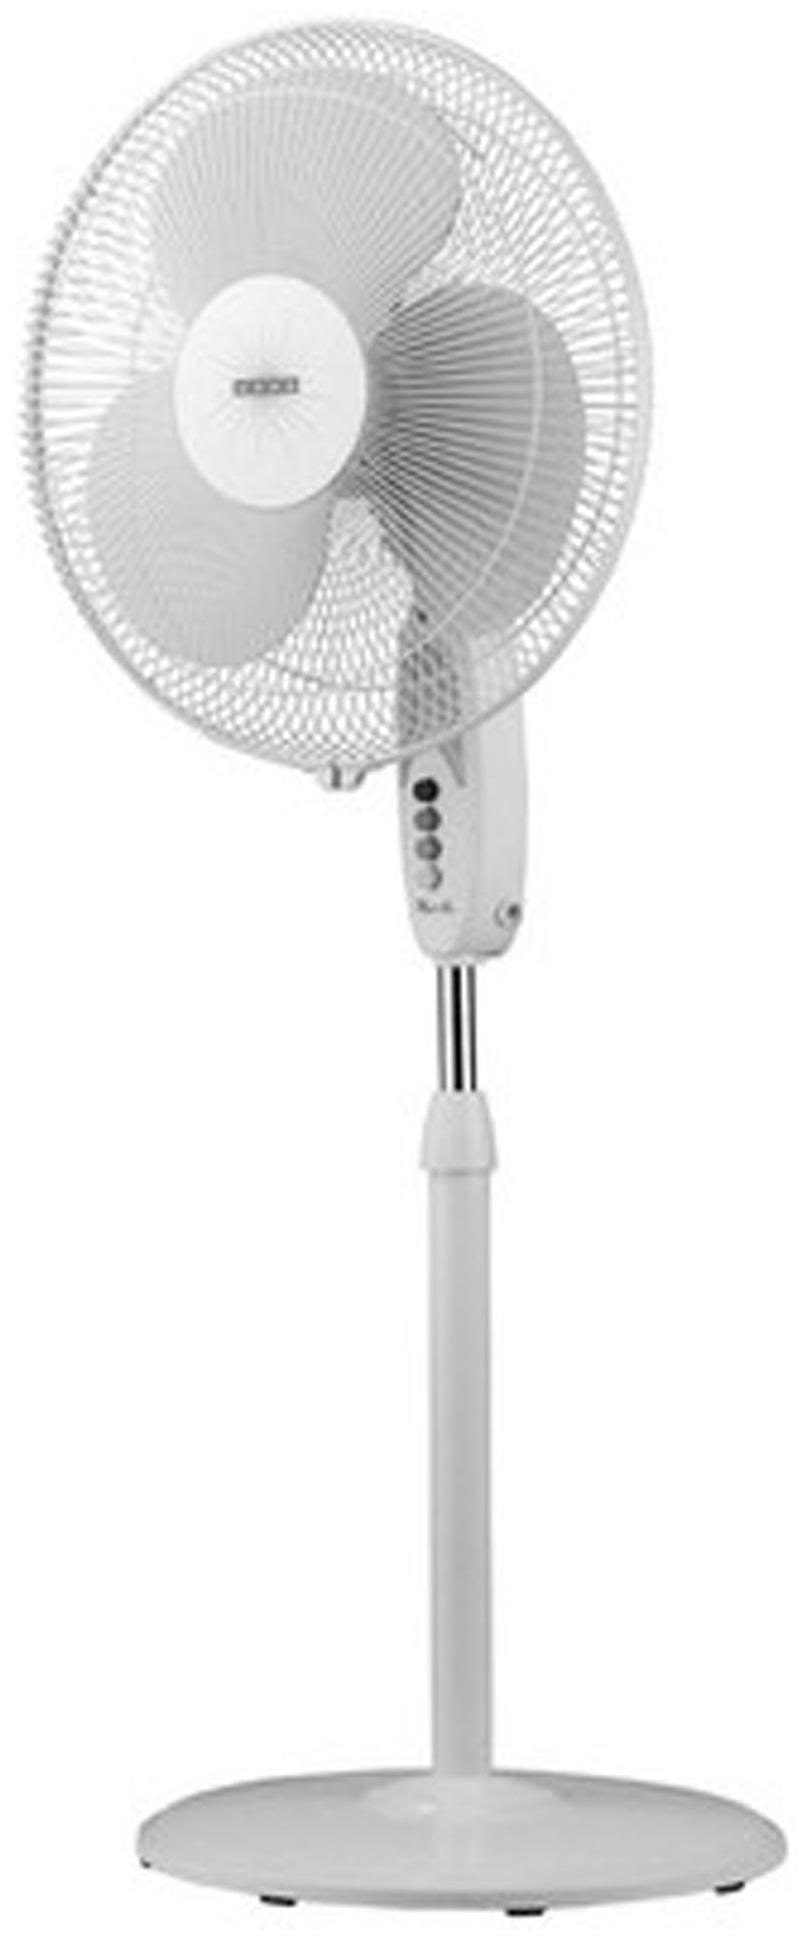 USHA Mistair Pedestal 3 Blade (400 mm) Pedestal Fan (White)